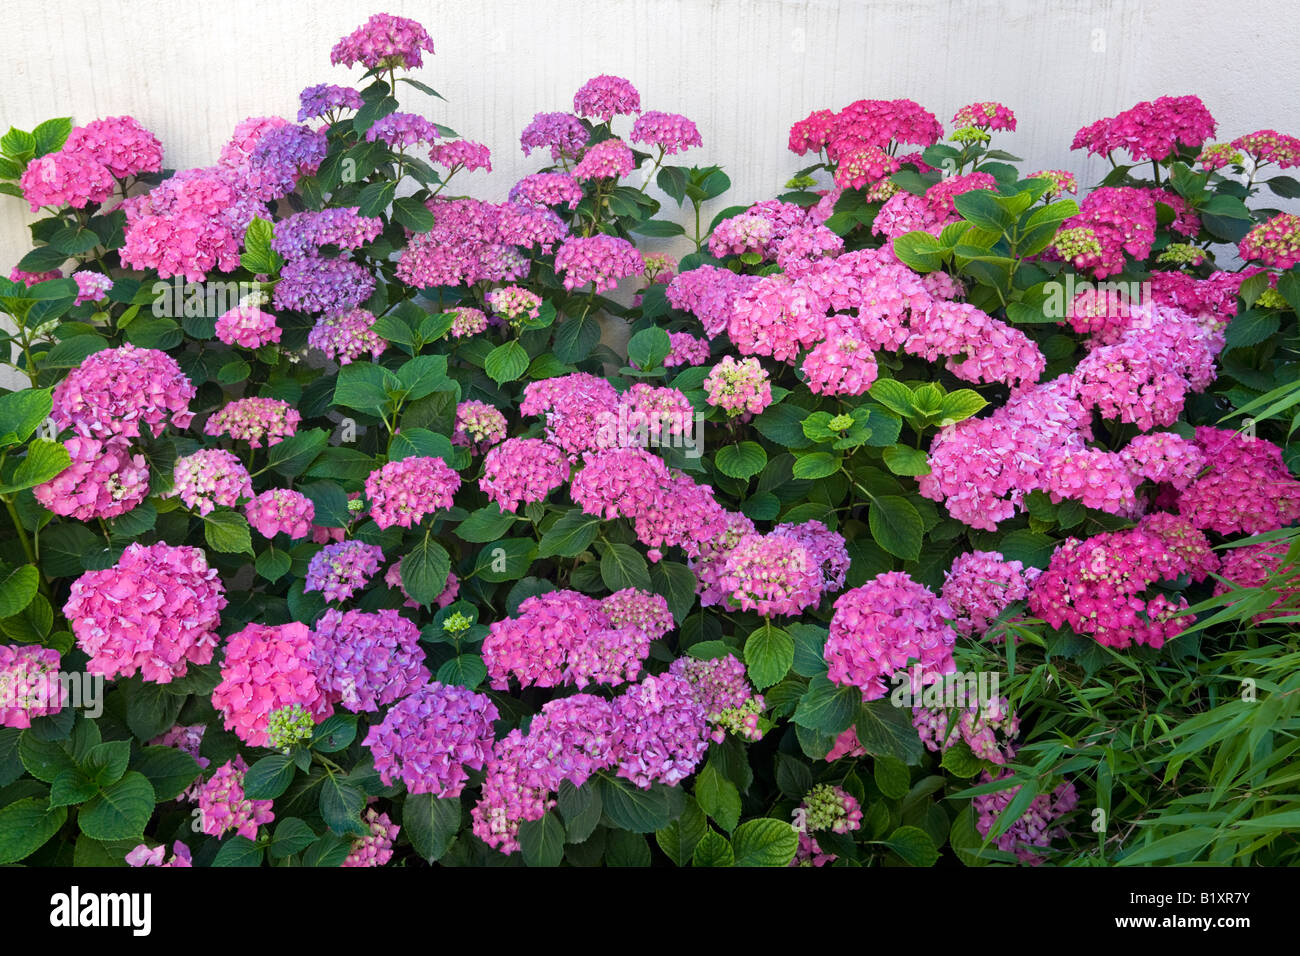 Pink Hydrangea bank (Hydrangea macrophylla), on a wall (France). Massif d'hortensia rose en fleurs, devant un - Stock Image